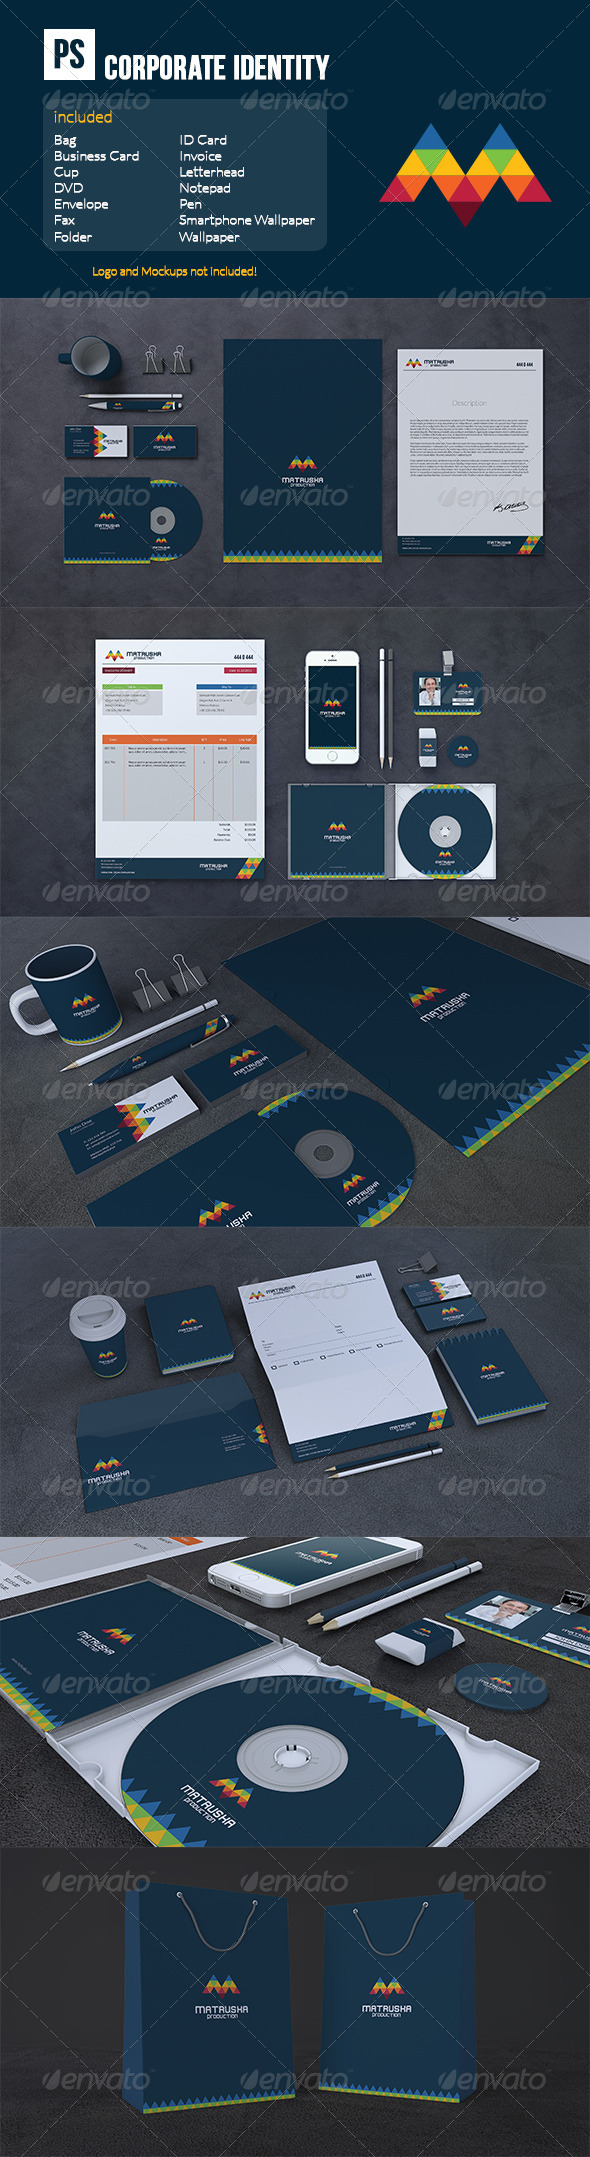 GraphicRiver Corporate Identity 6795245